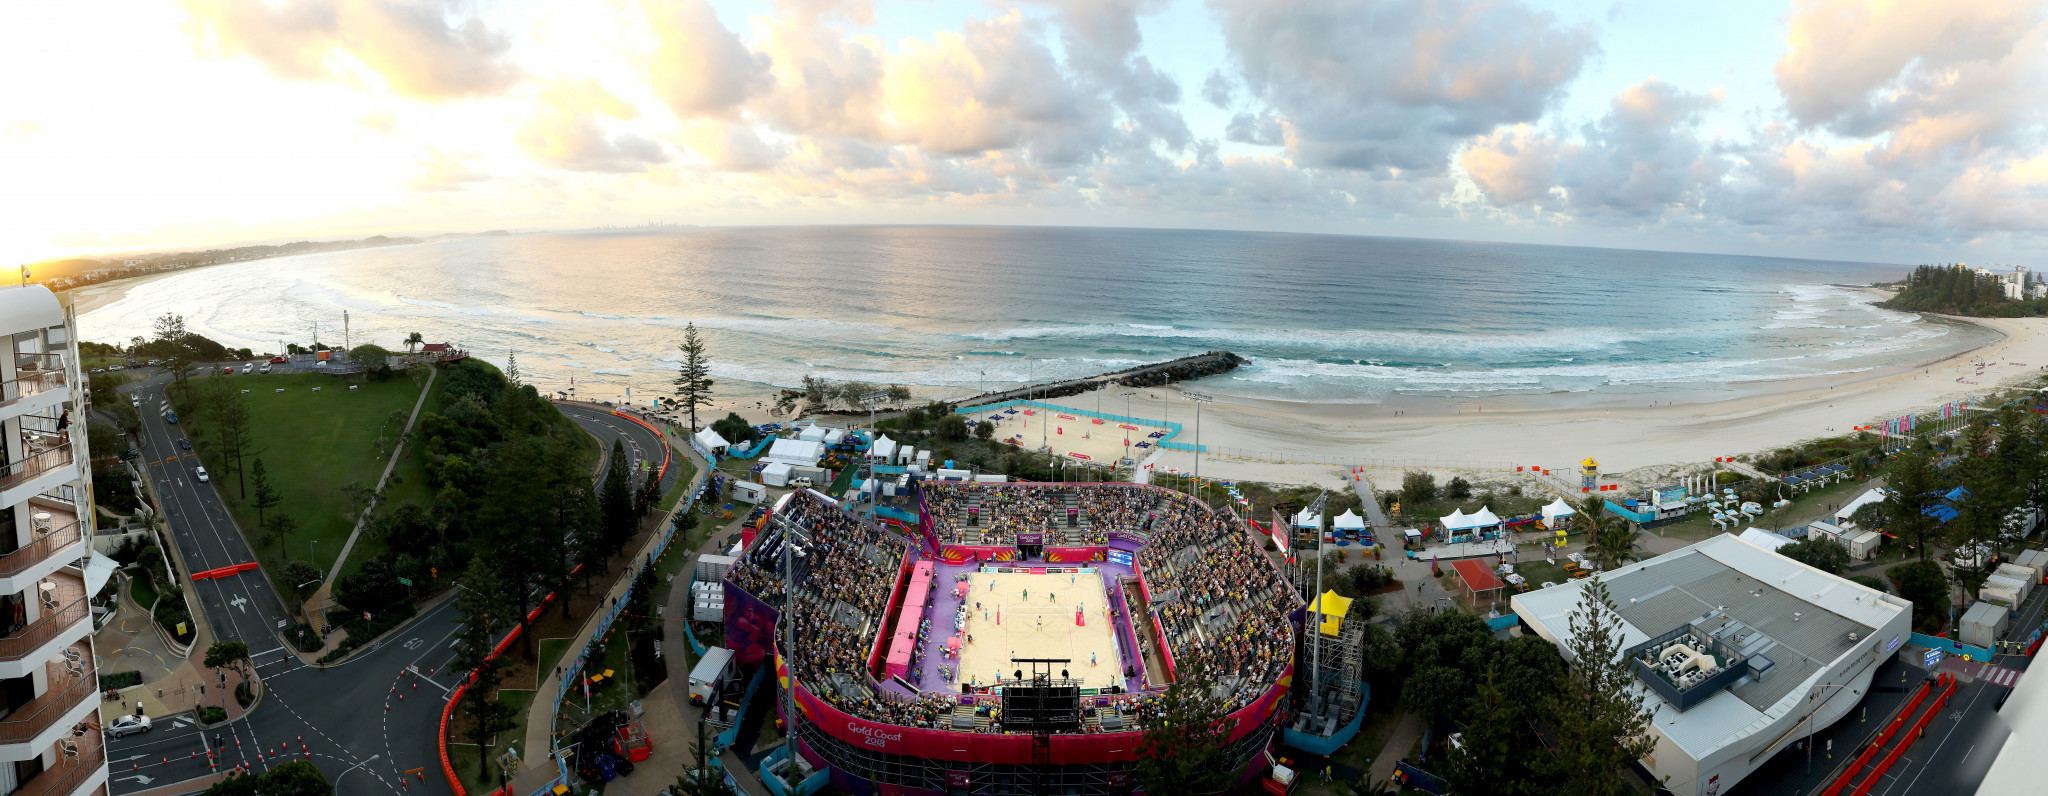 Beach Volleyball Makes Commonwealth Games Debut On Gold Coast Sands